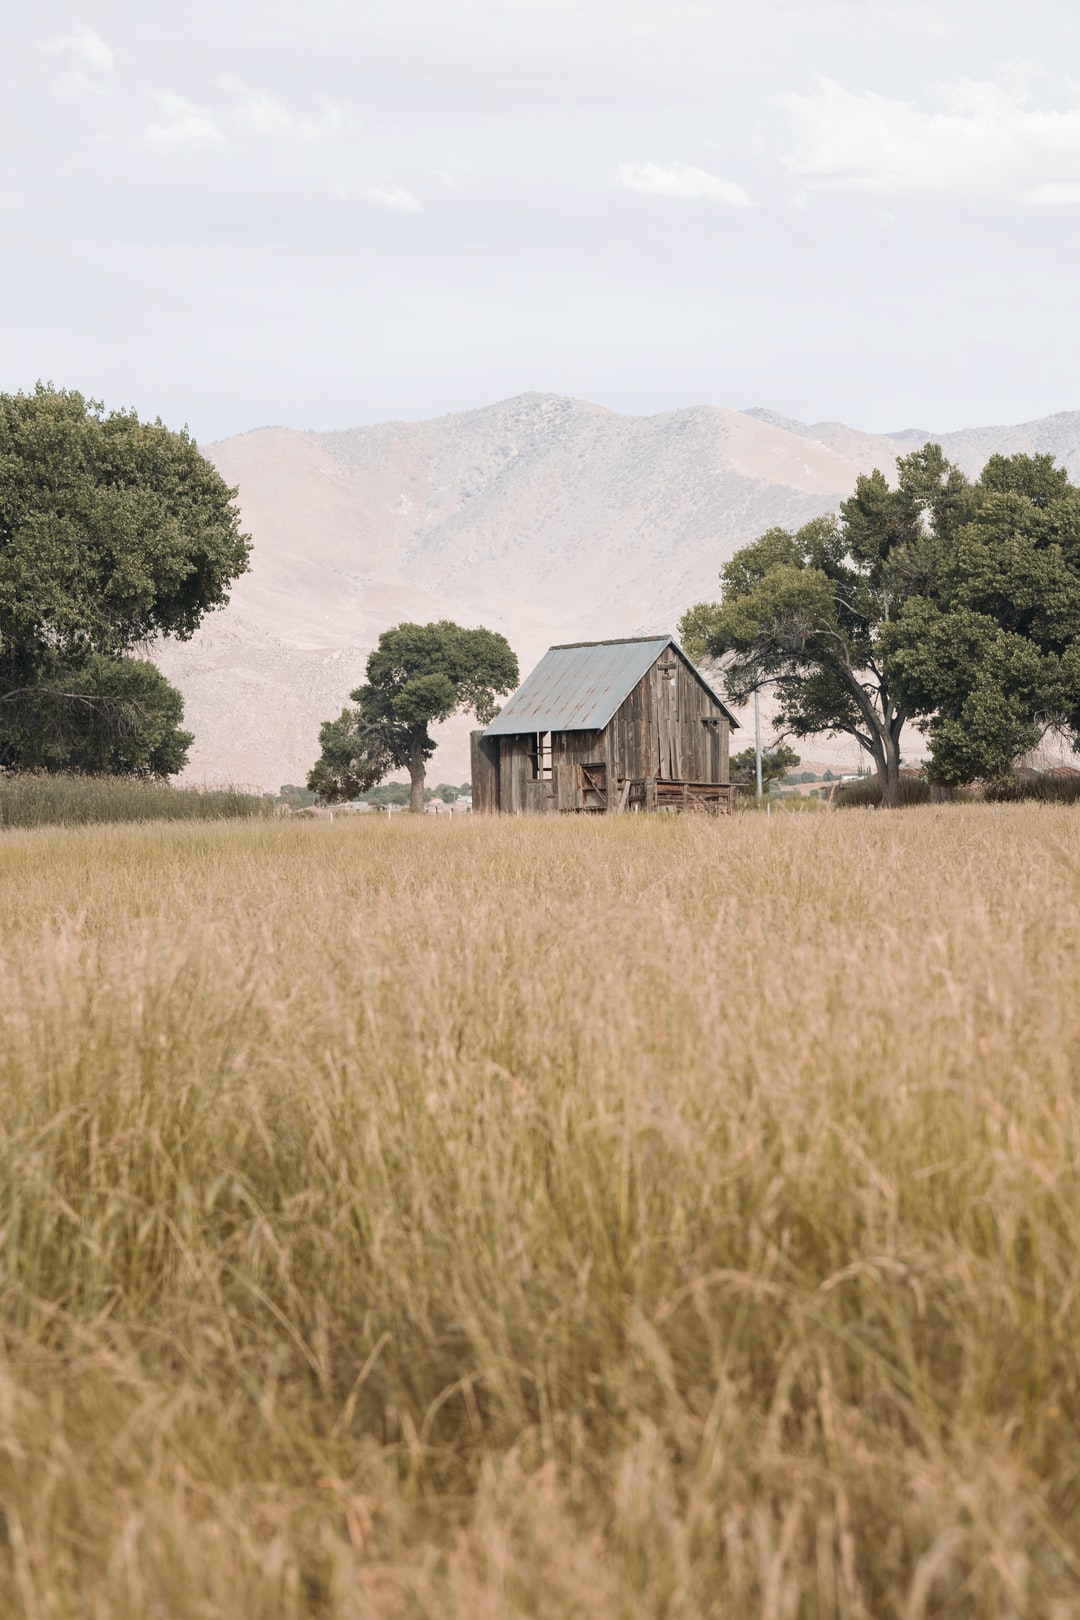 Old barn in the golden grass framed by trees - background plate